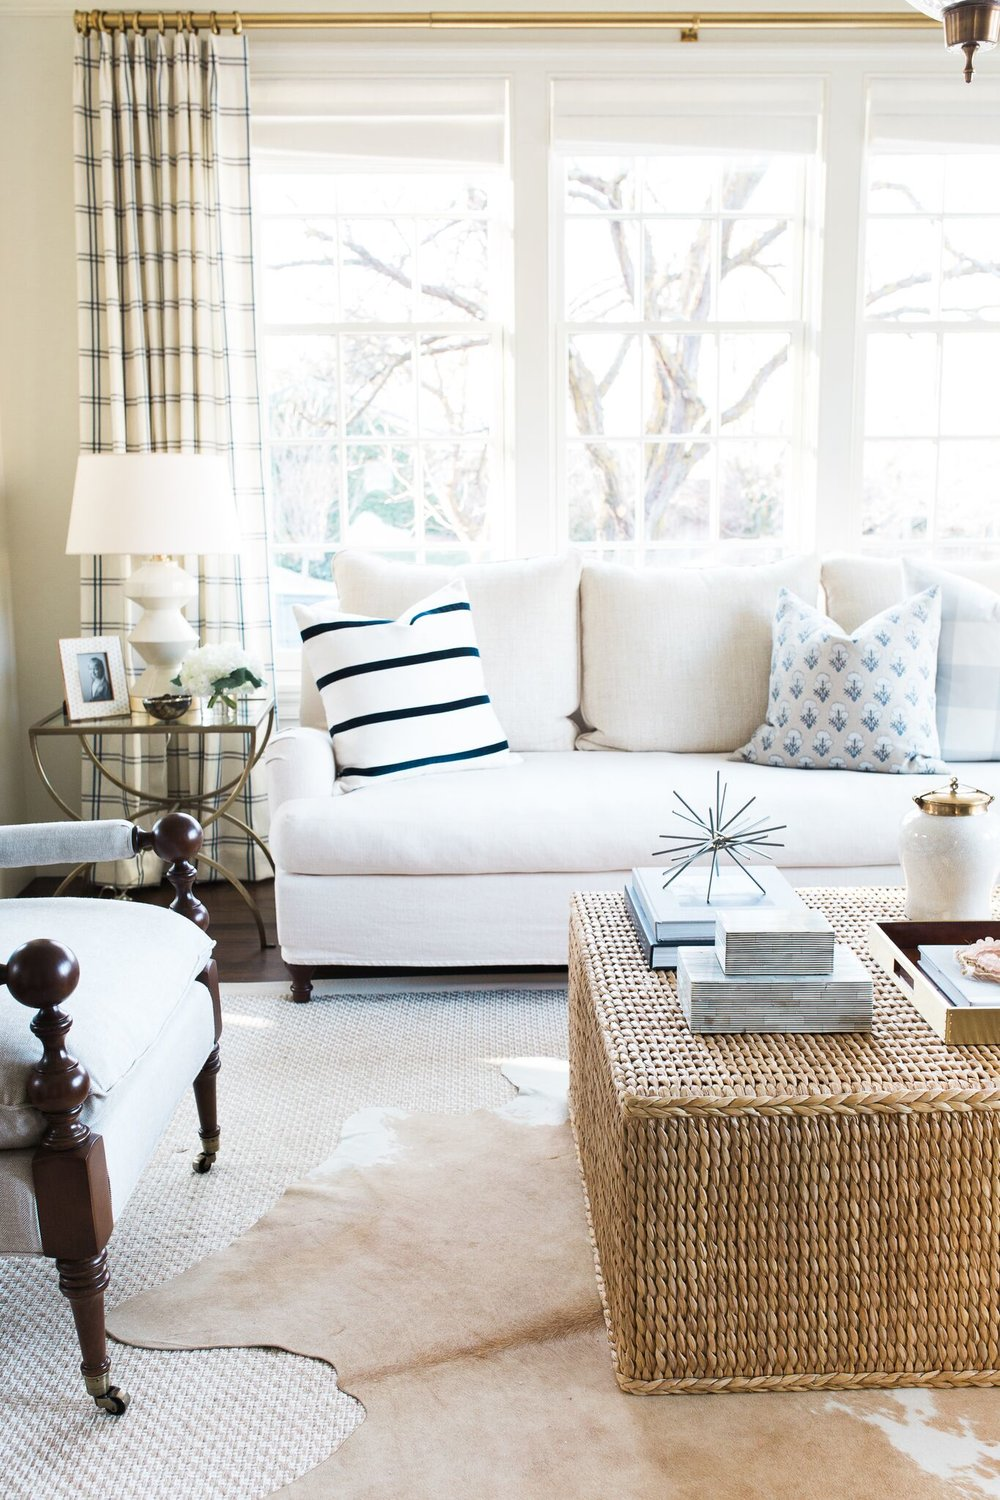 Wicker coffee table in front of white sofa